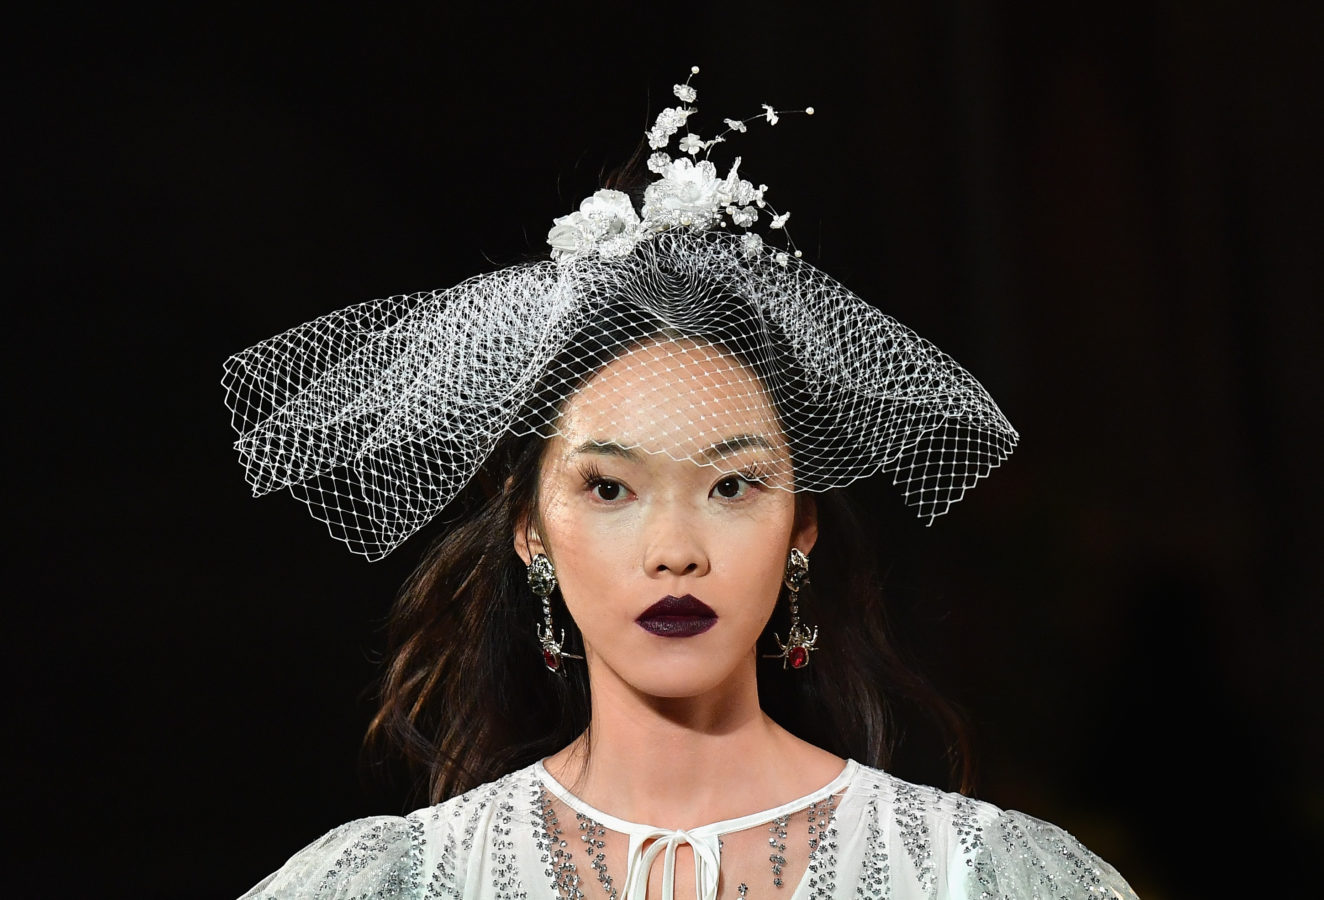 The beauty trends that took over New York Fashion Week